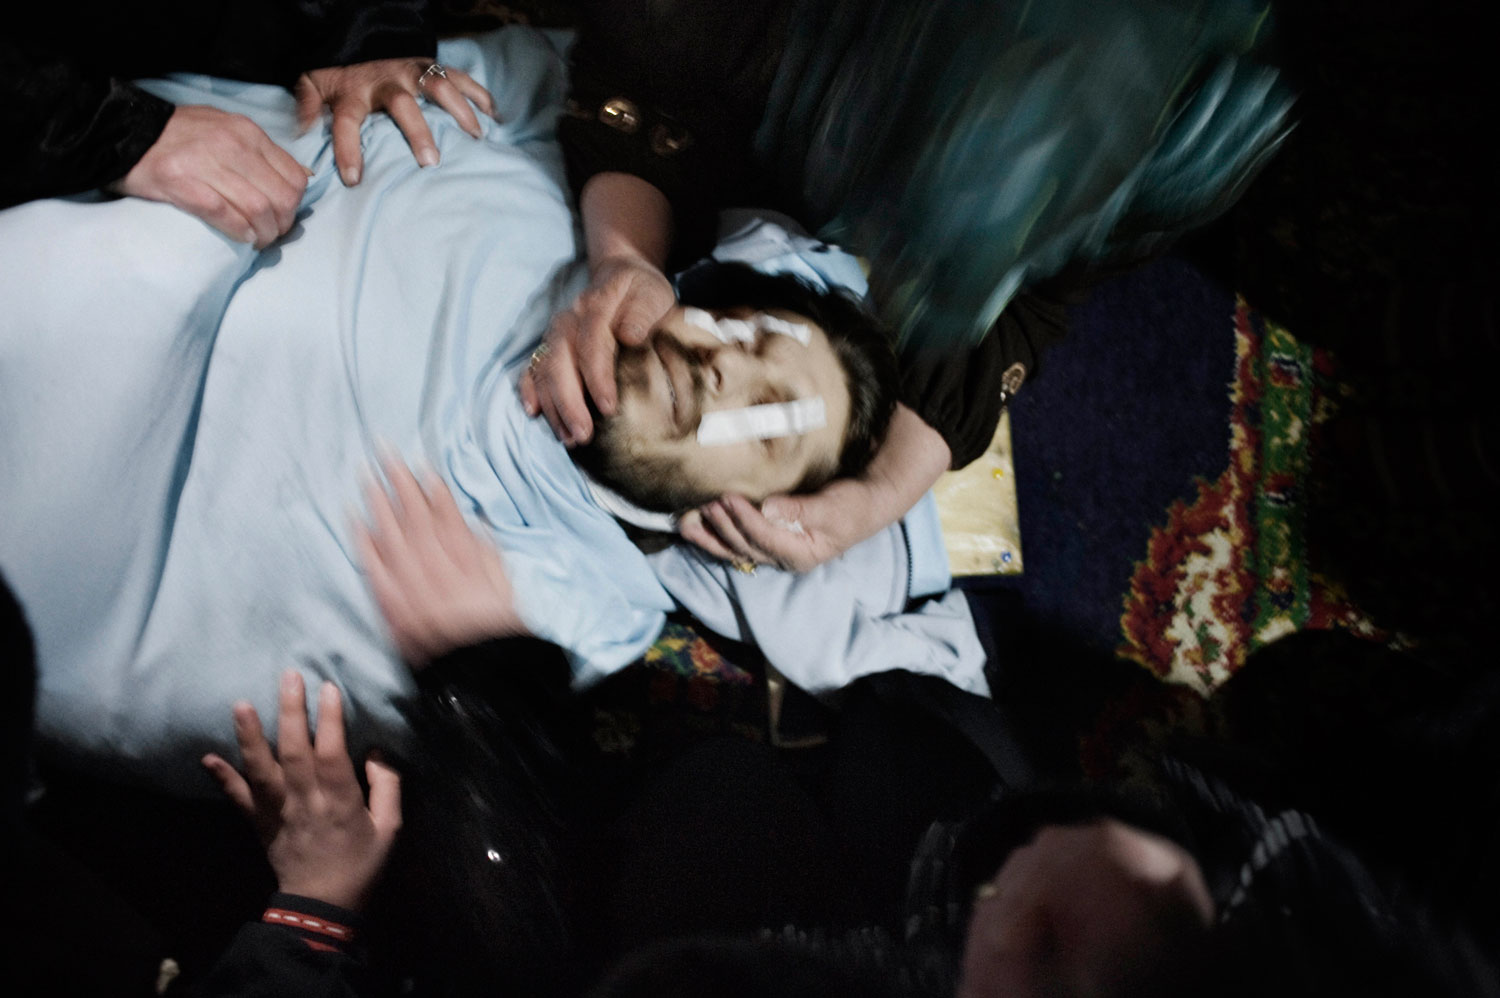 Mourners at the funeral of Asem Bader Waw, a 31-year-old shot dead by a Syrian army sniper in Al Qsair. Jan. 31, 2012